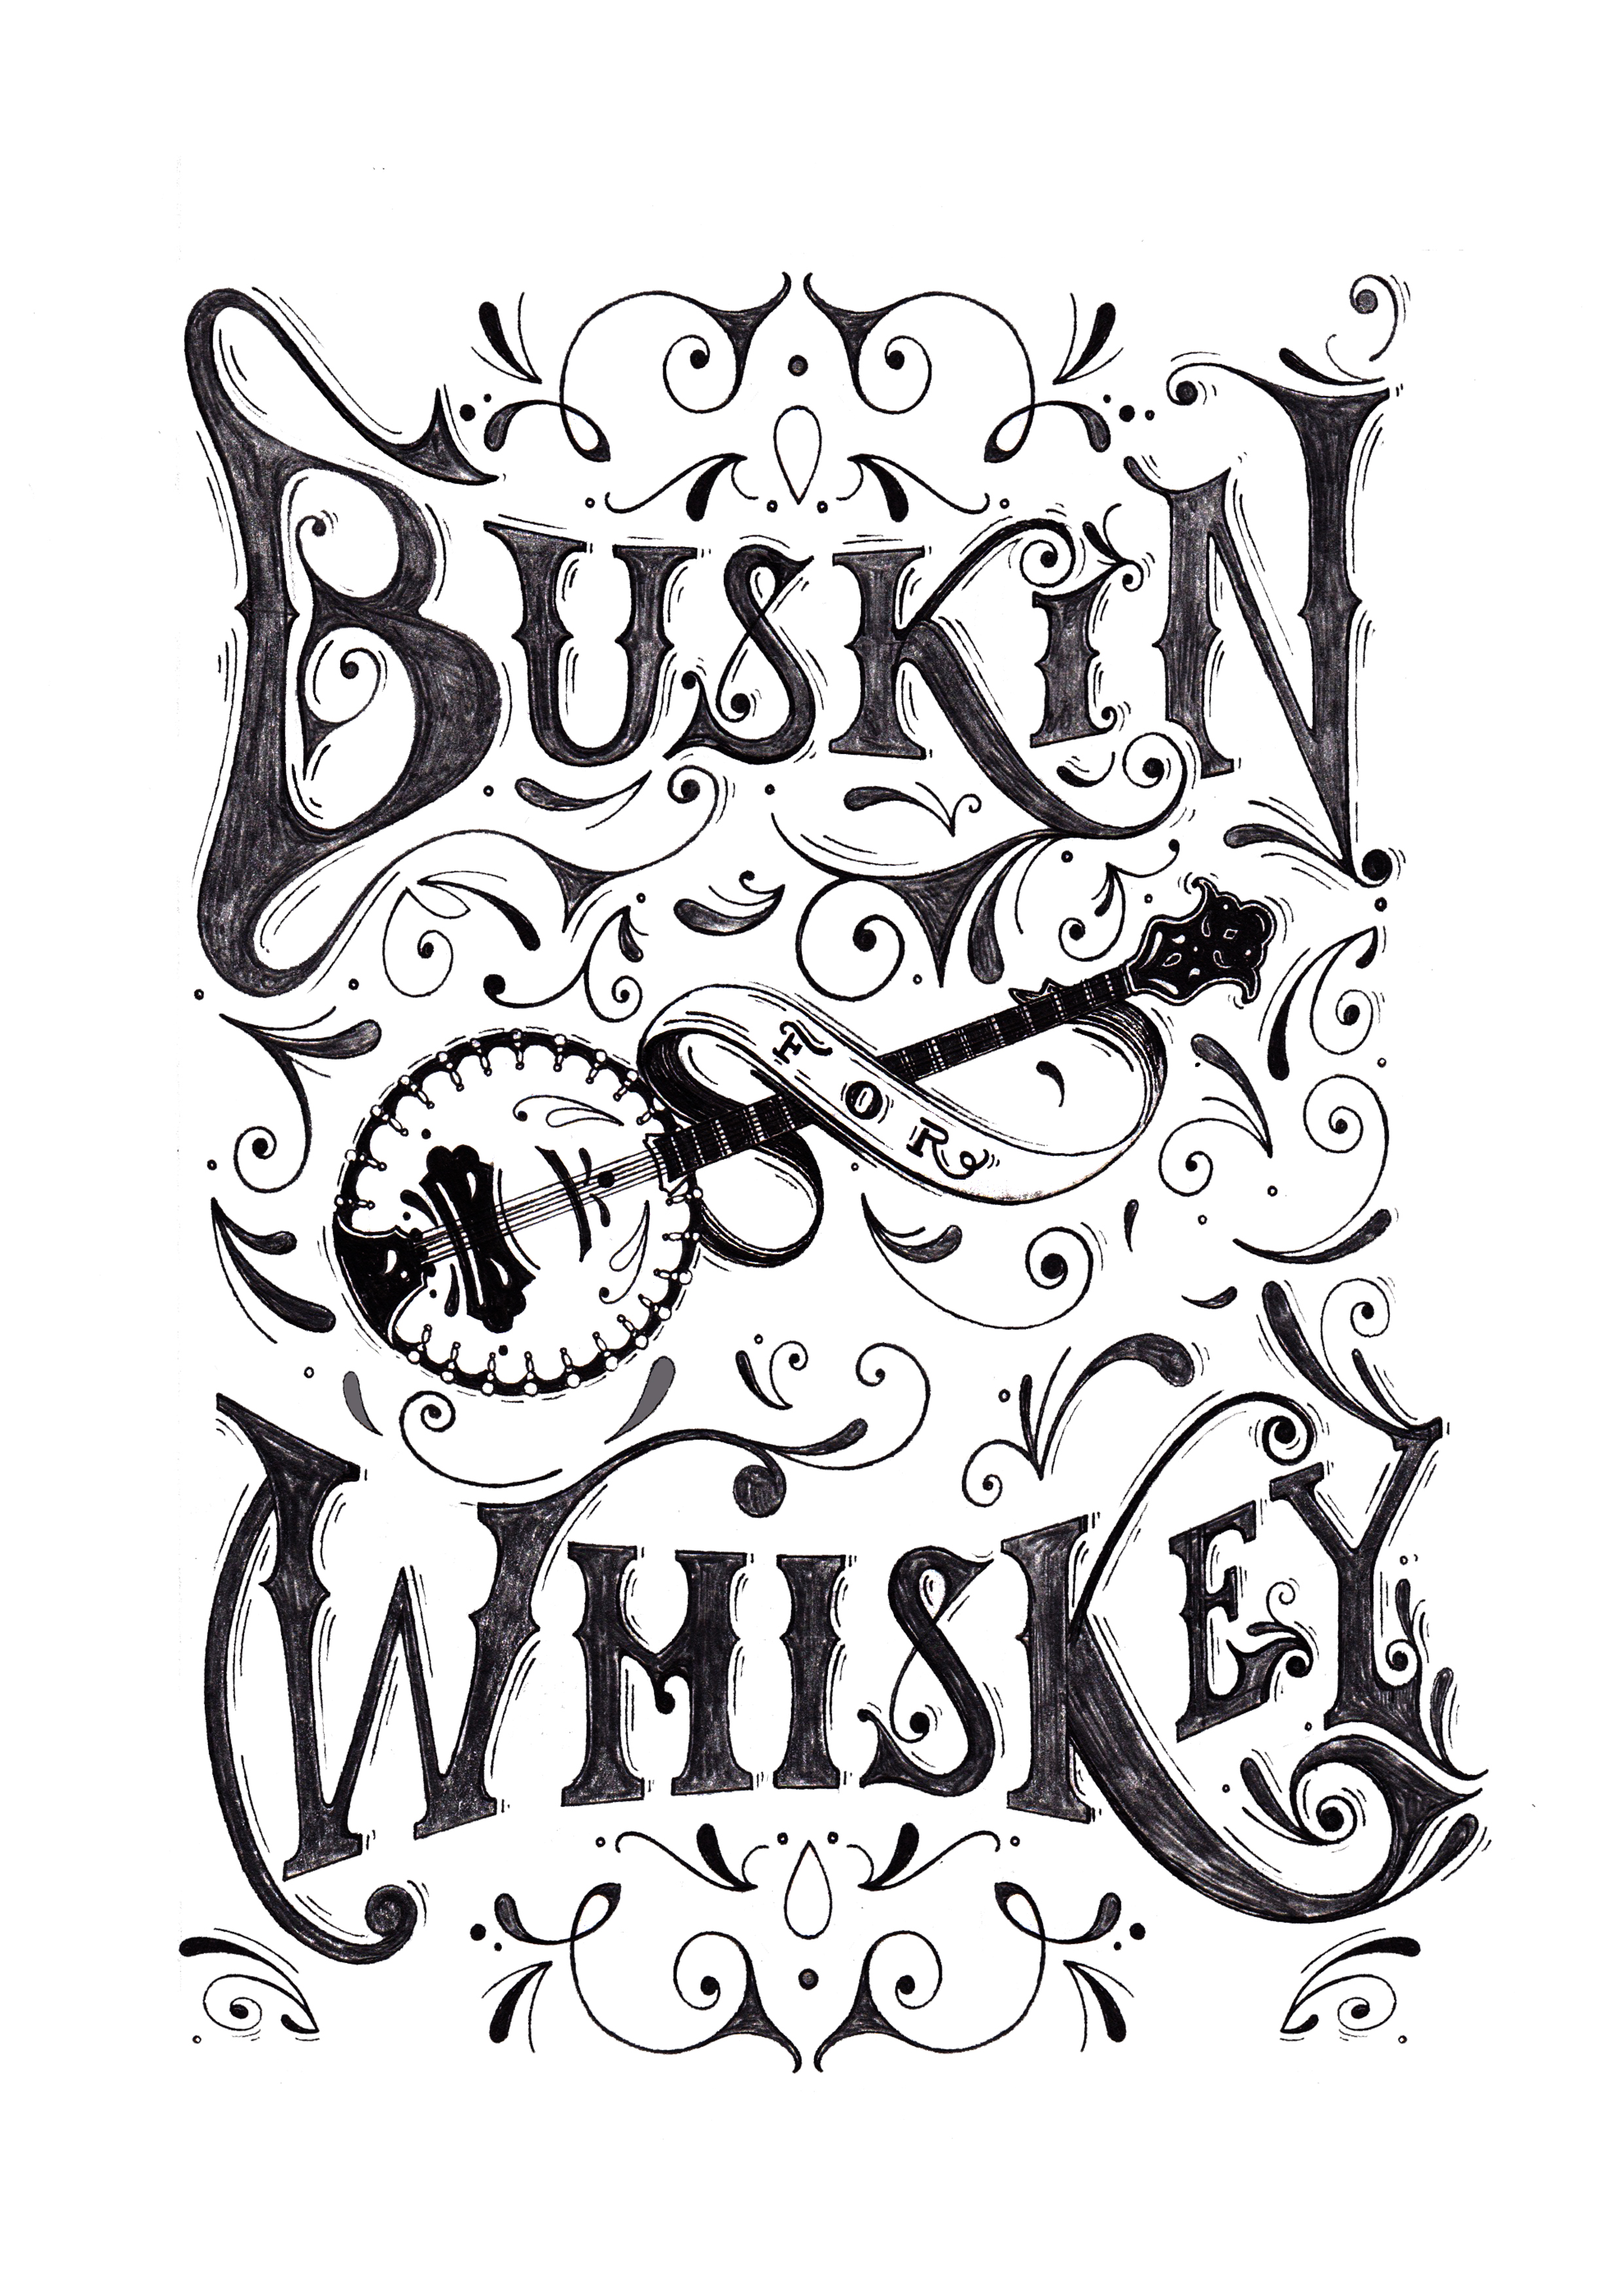 Buskin' For Whiskey - Nashville Typographic Illustration for Flag & Anthem Clothing, 2016.